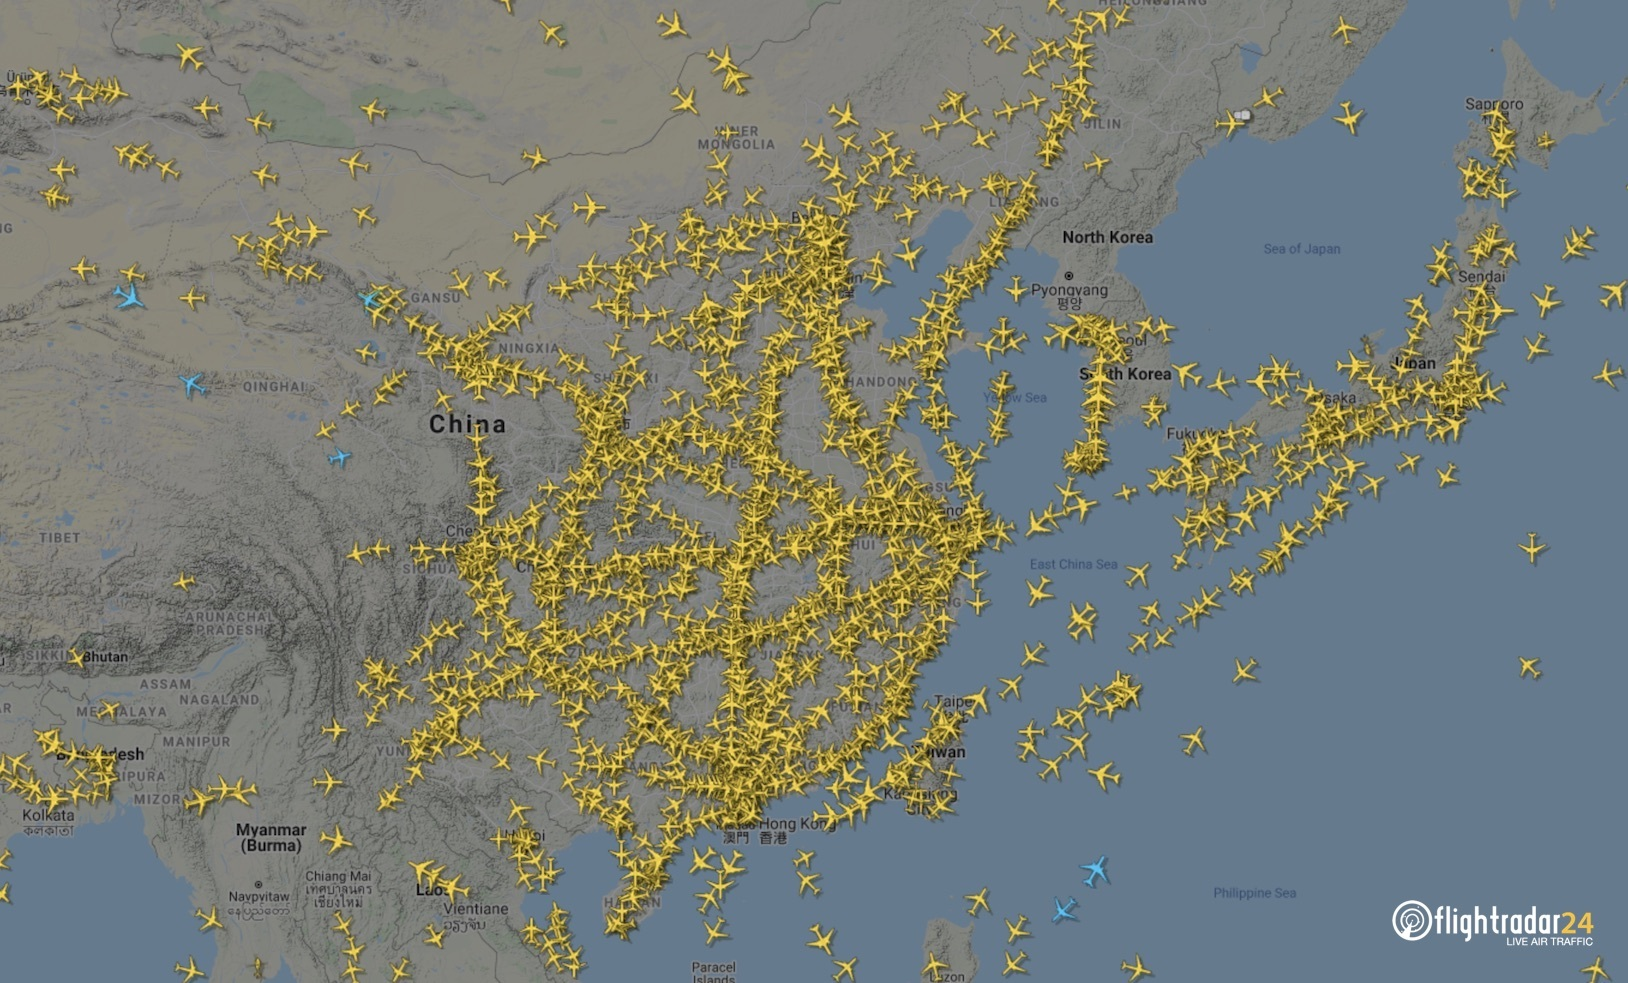 Air traffic over China